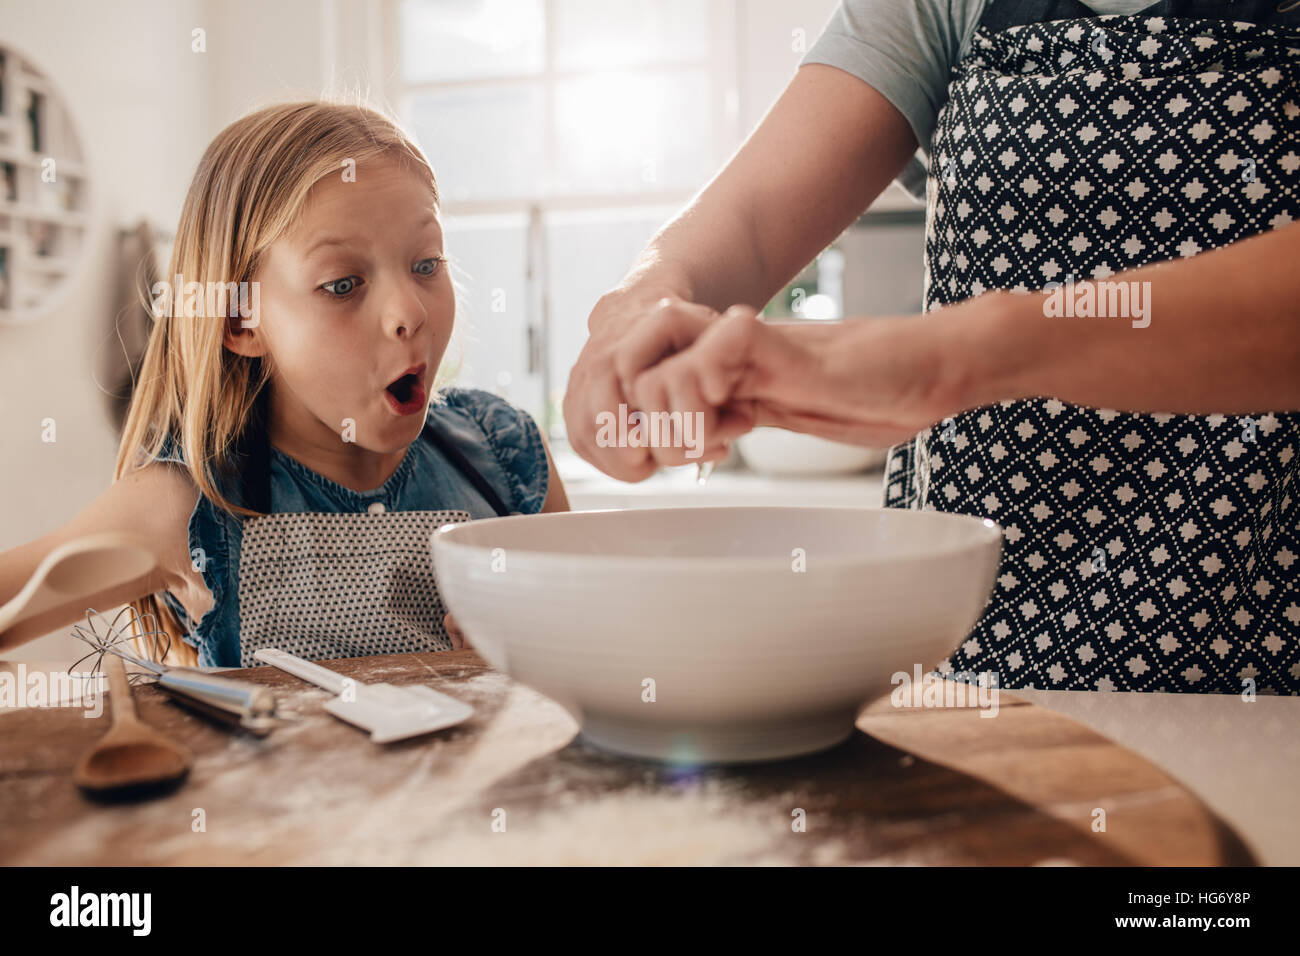 Excited young girl with mother preparing dough for baking. Woman hands cooking with daughter standing by in kitchen. - Stock Image